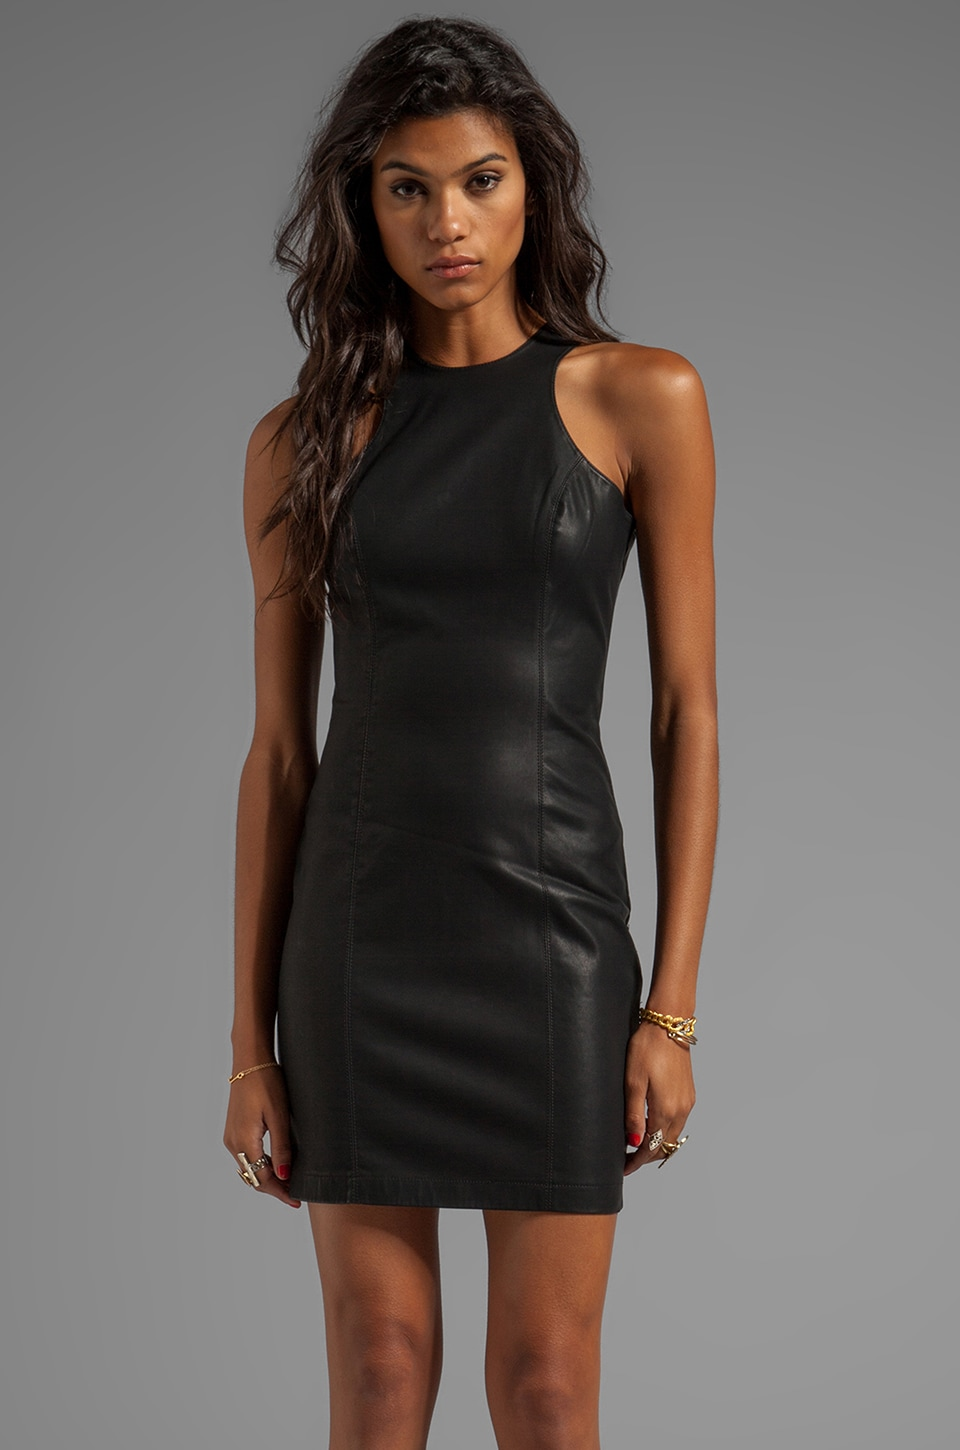 BB Dakota Simone Stretch PU Dress in Black